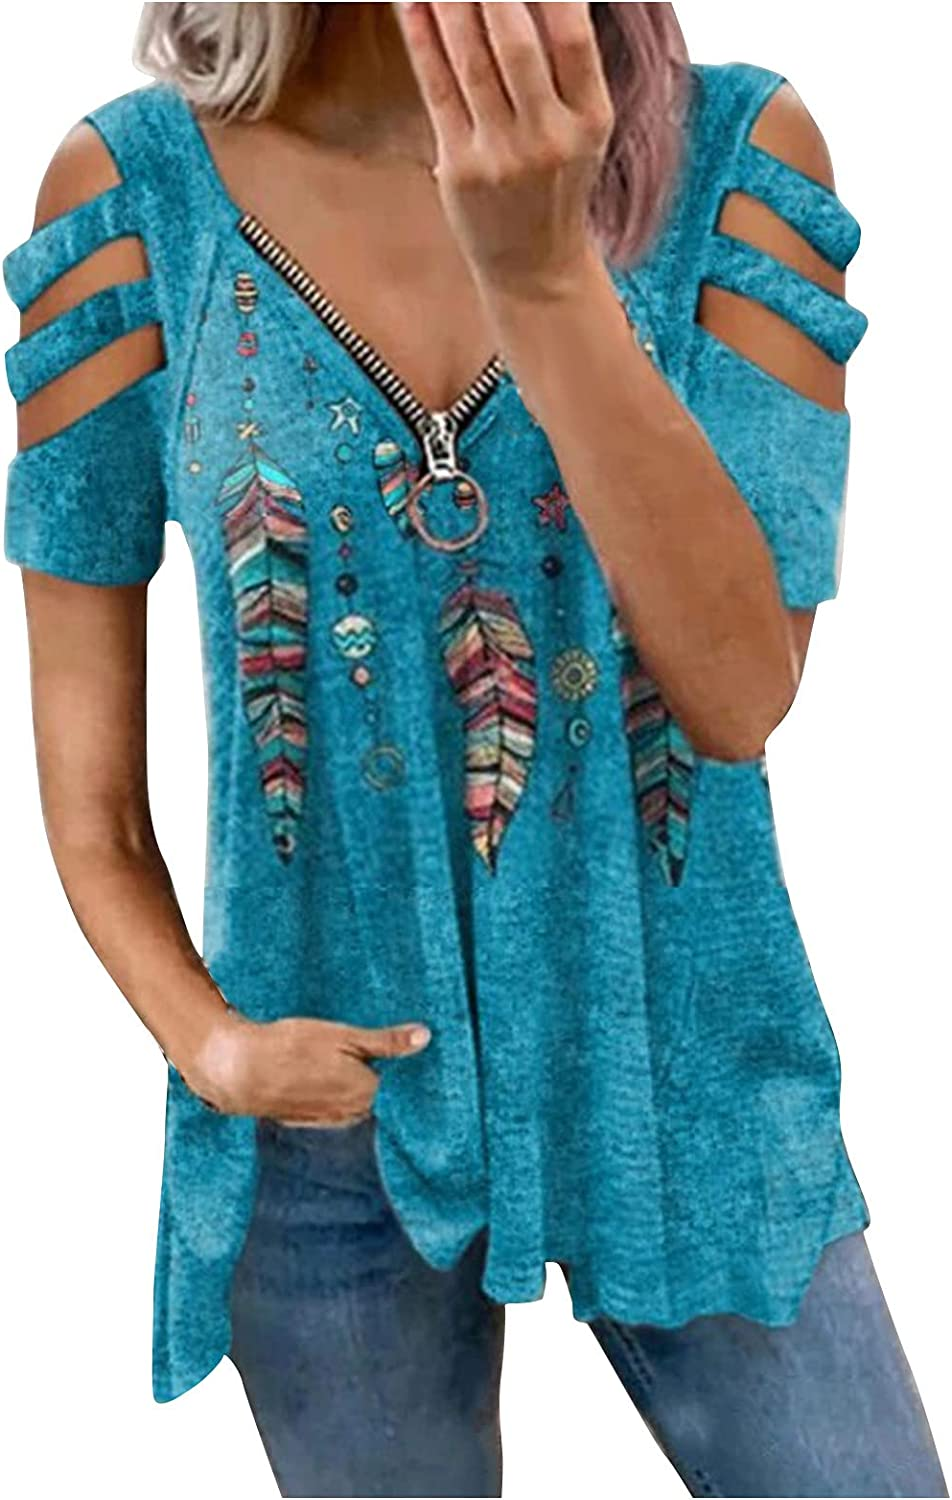 Summer Tops for Women, Womens Zipper V Neck Flowy T-Shirts Strappy Short Sleeve Tops Blouse Casual Tunic Tee Top